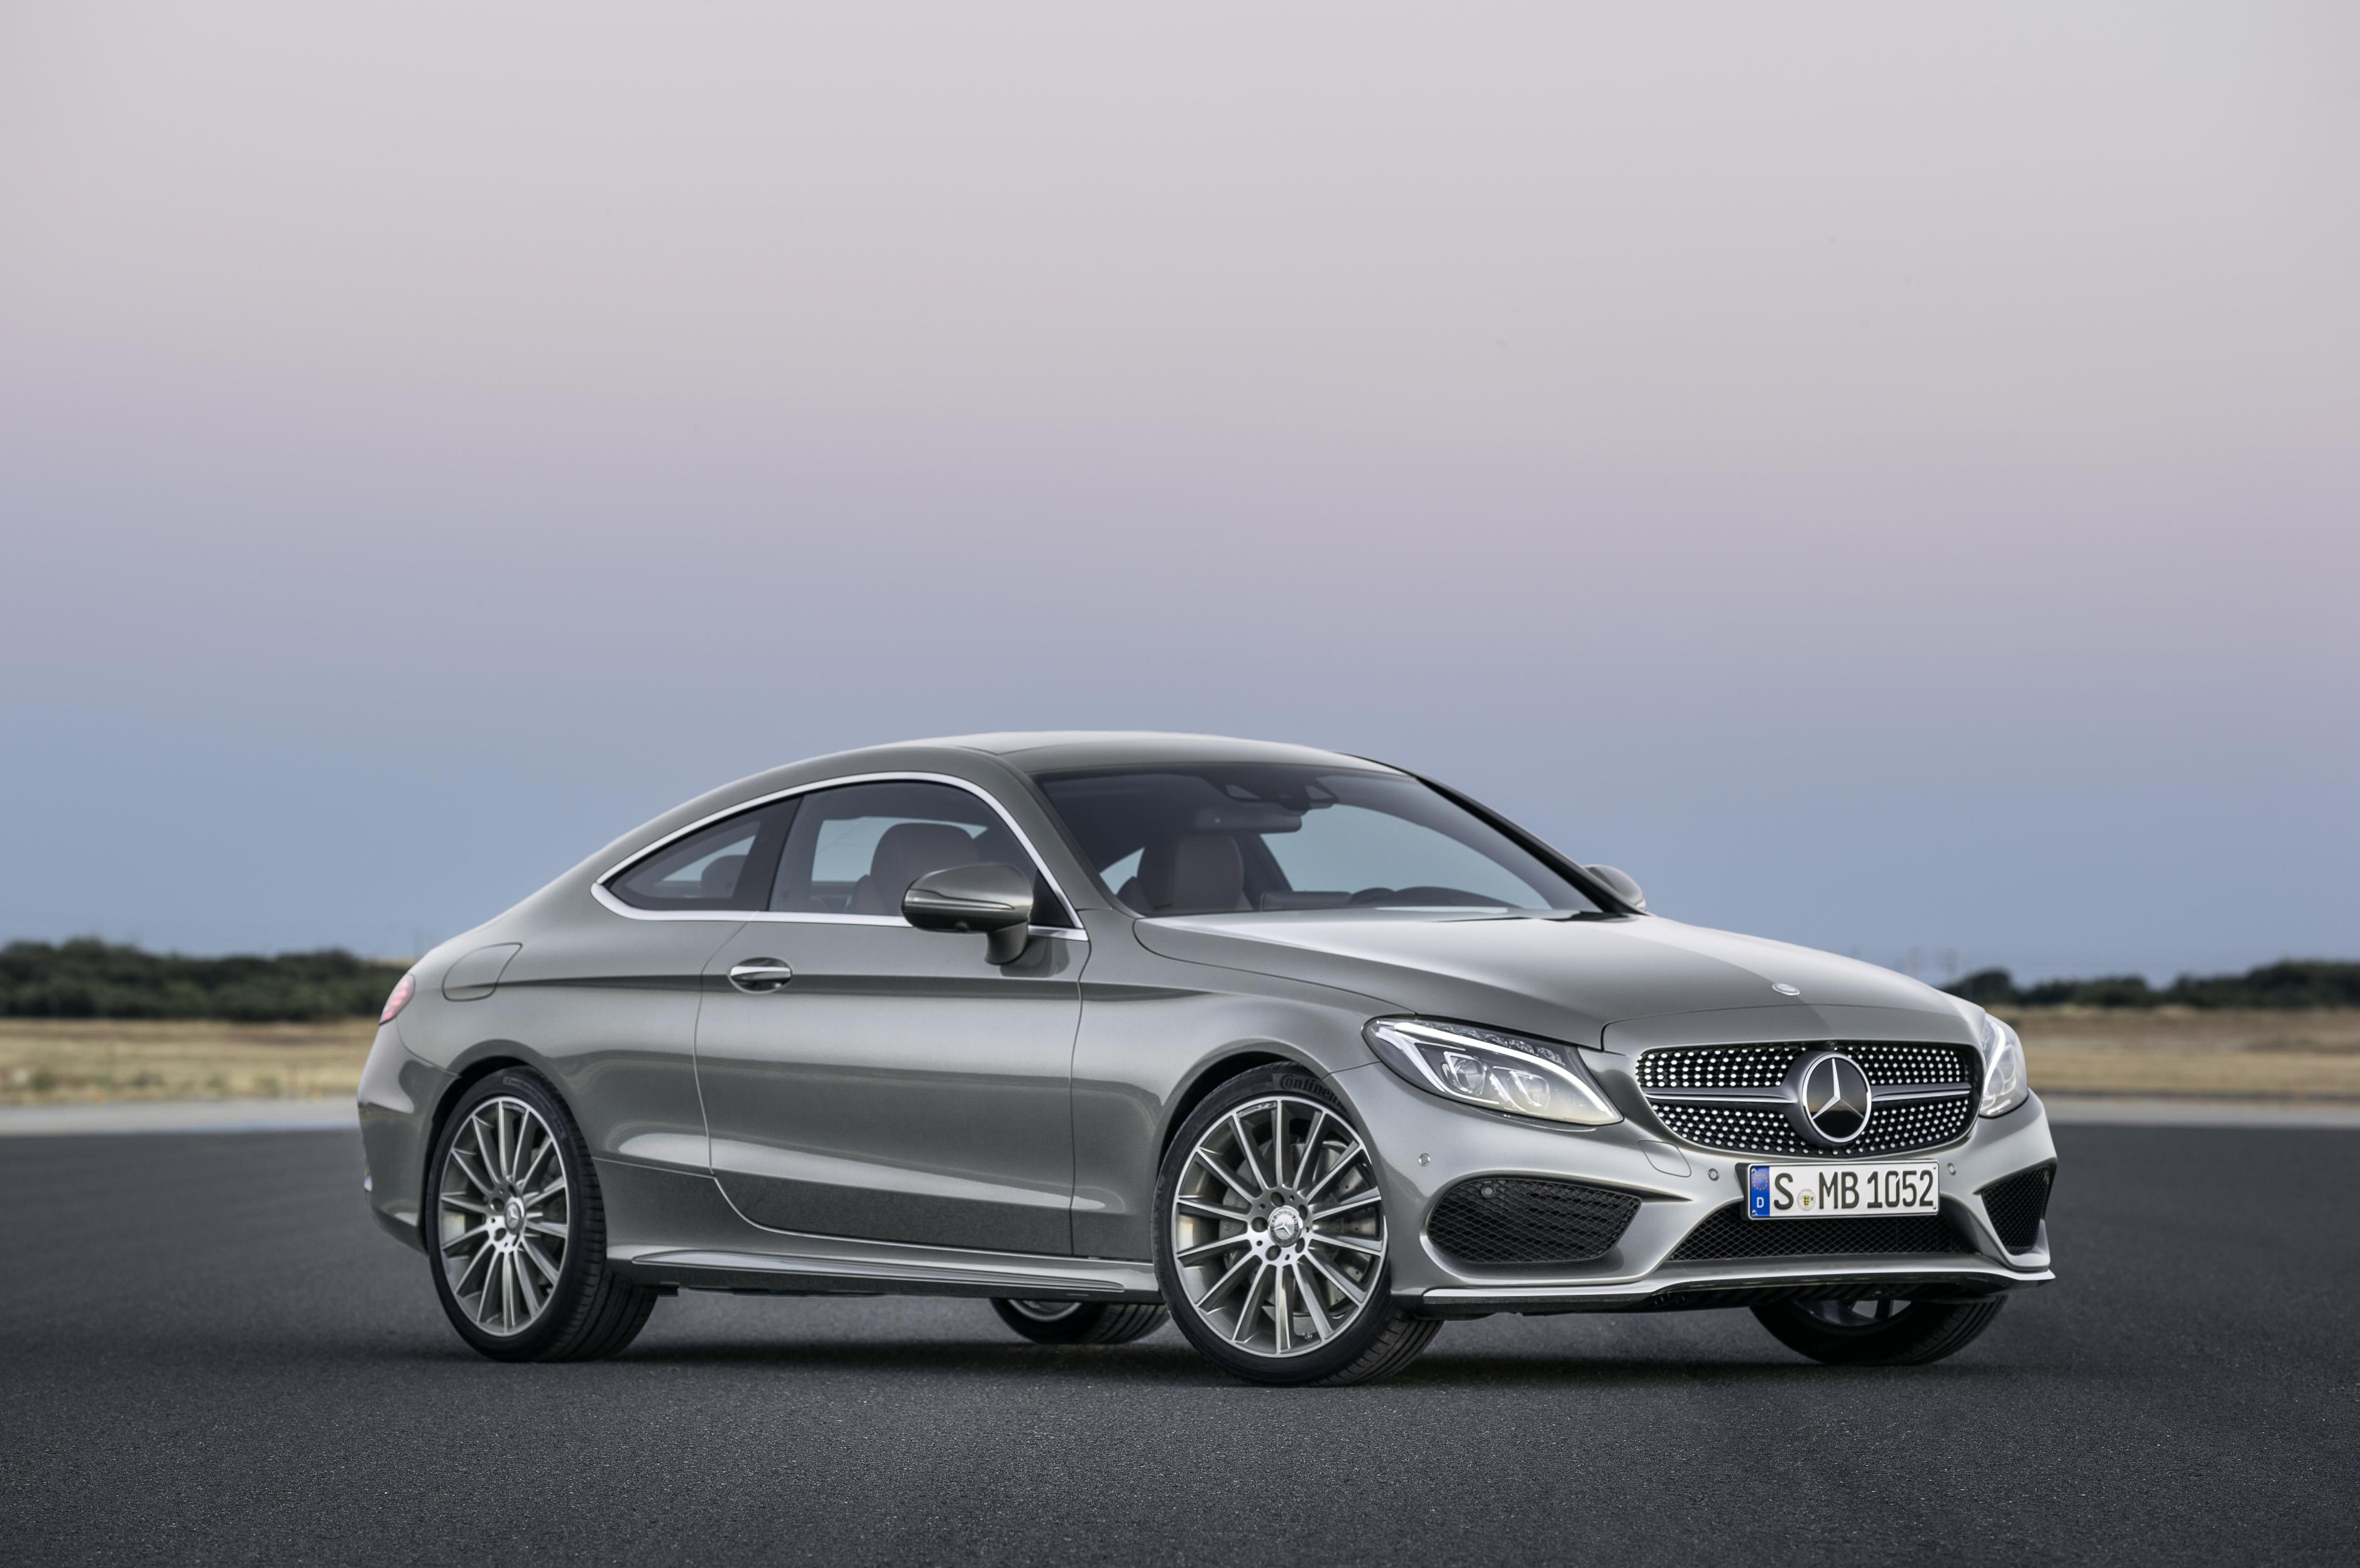 Mercedes Benz C Class Coupe Revealed